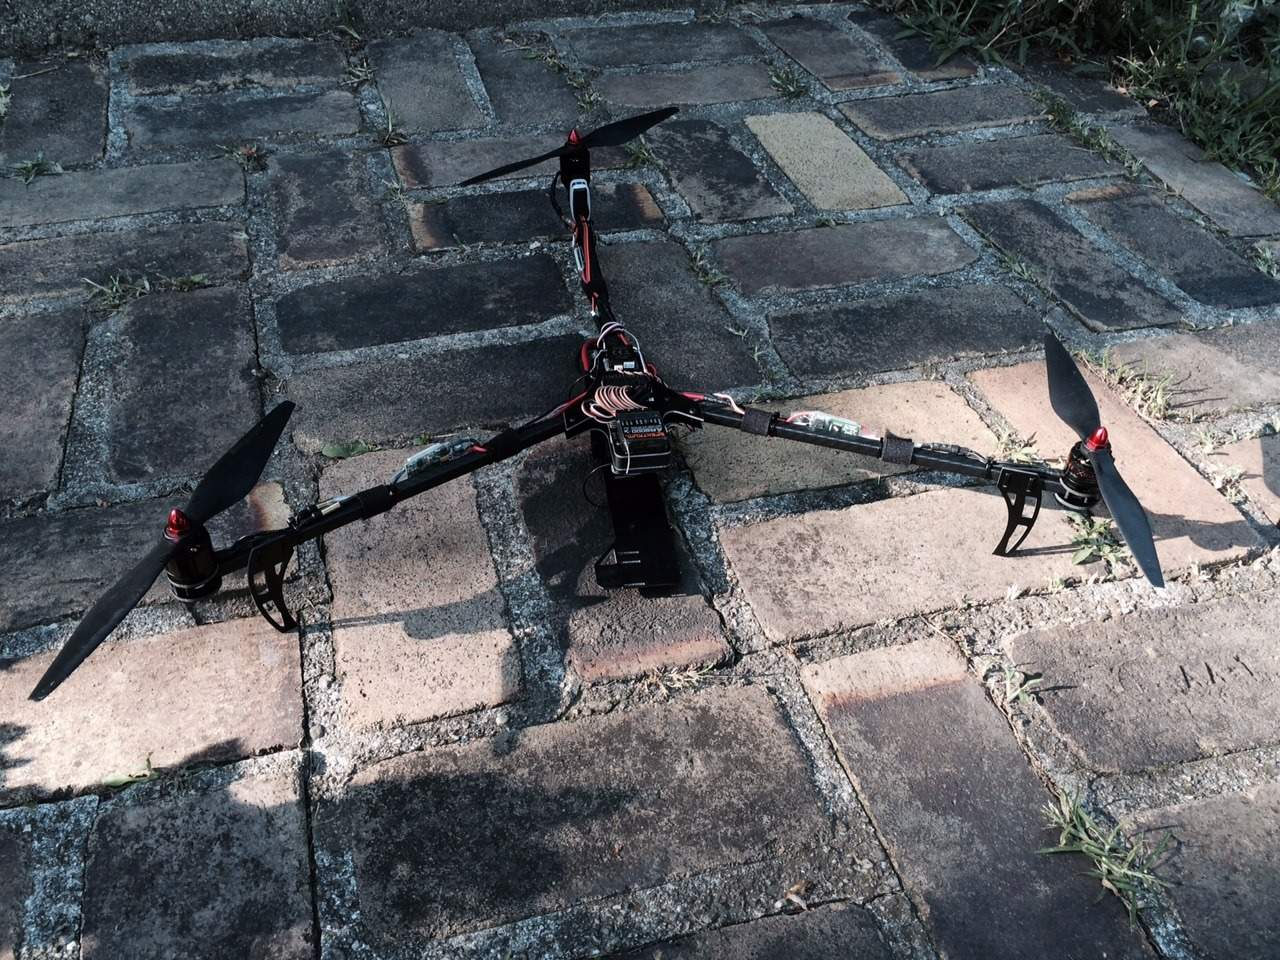 Diy Printed Circuit Boards Rcexplorer Tri Copter There Is A Purpose Built Firmware For This Board And An Optimized Version Copters In General On Standard Naze32 Using Cleanflight Instead Of